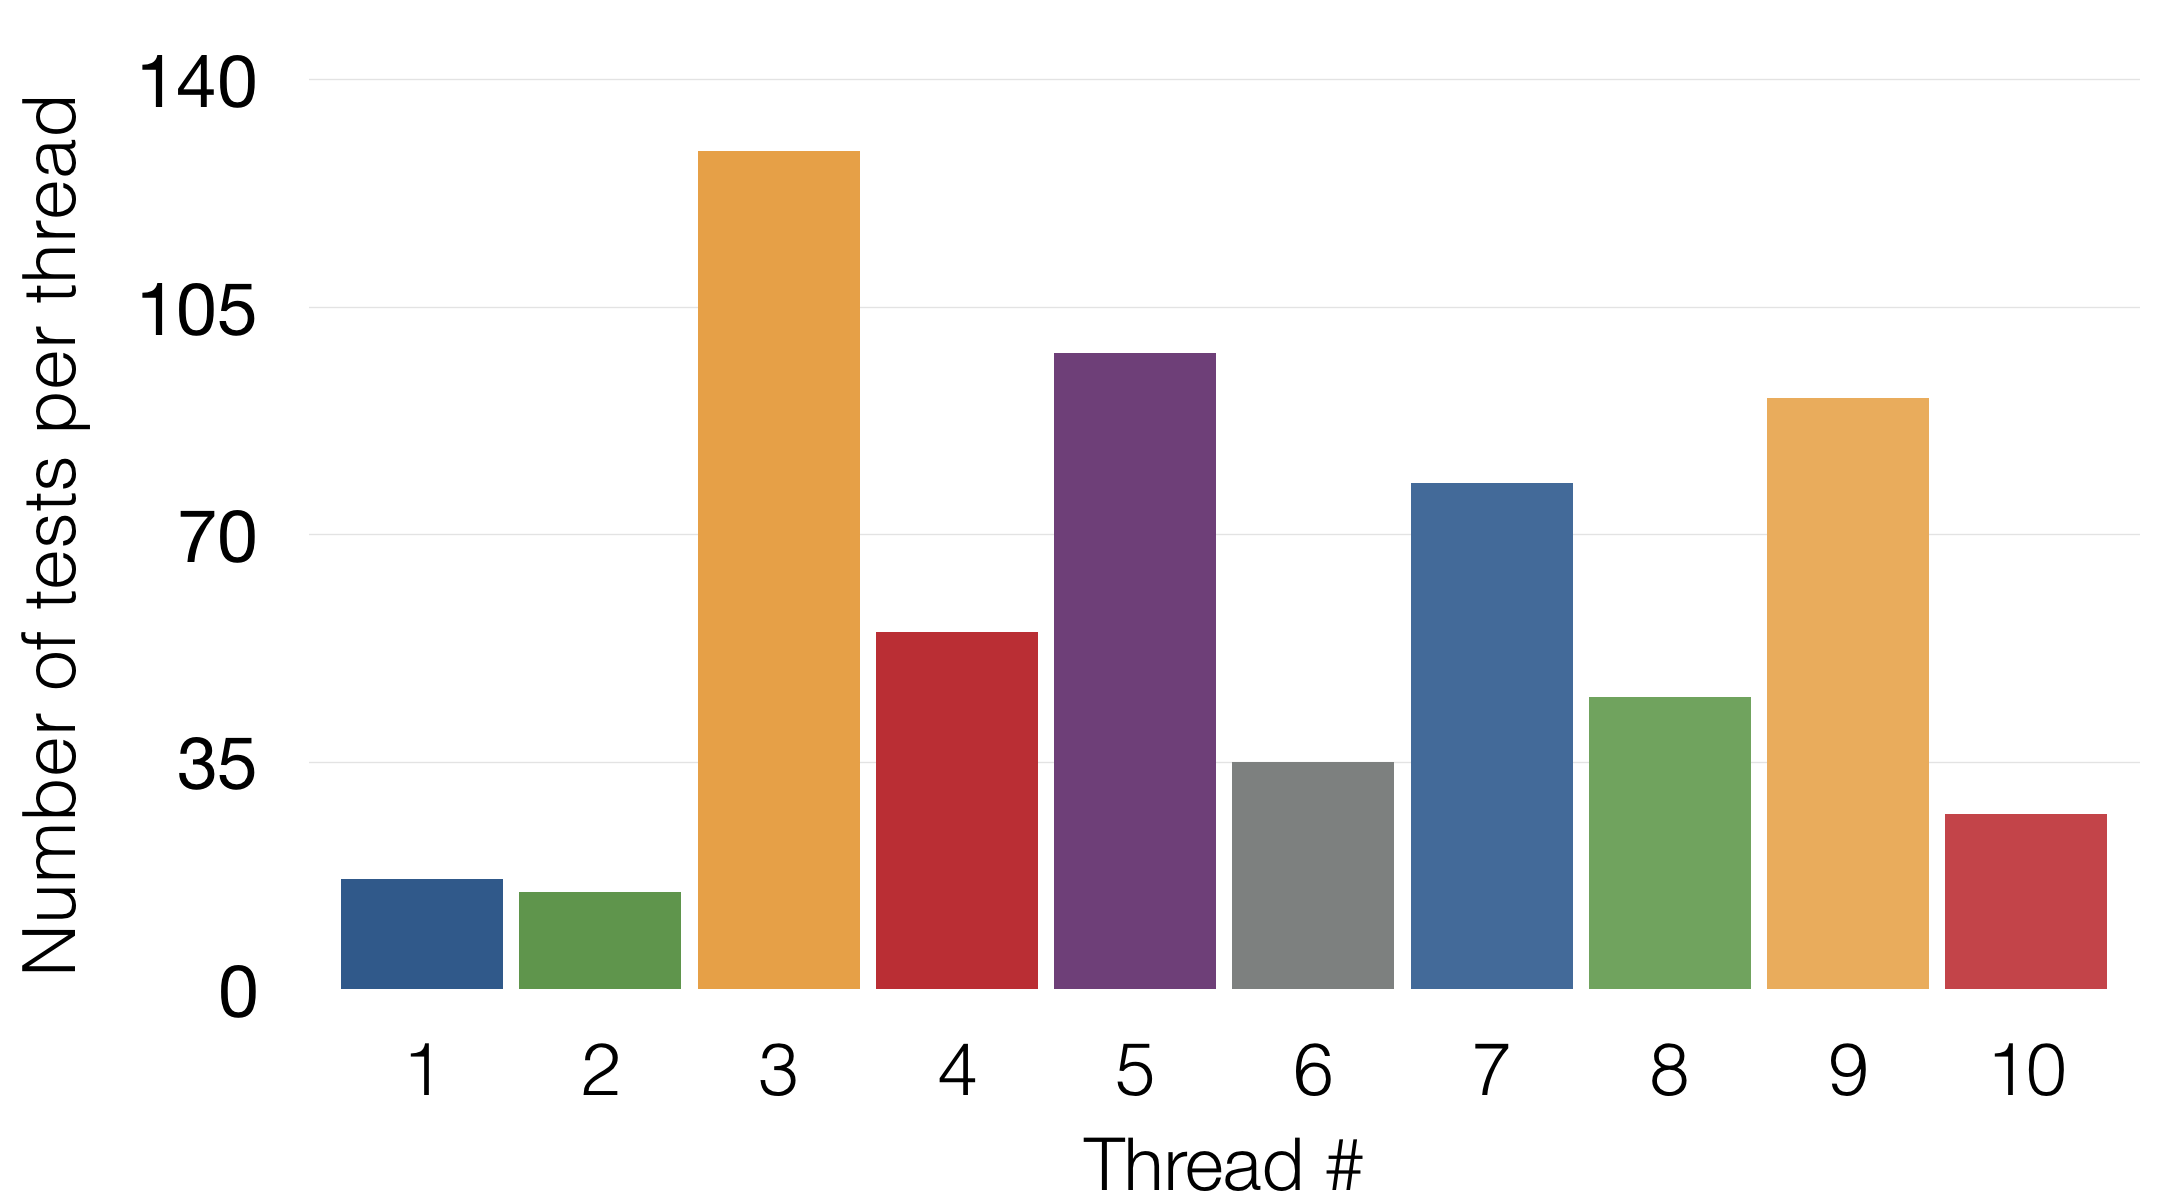 Thread sizes before optimization